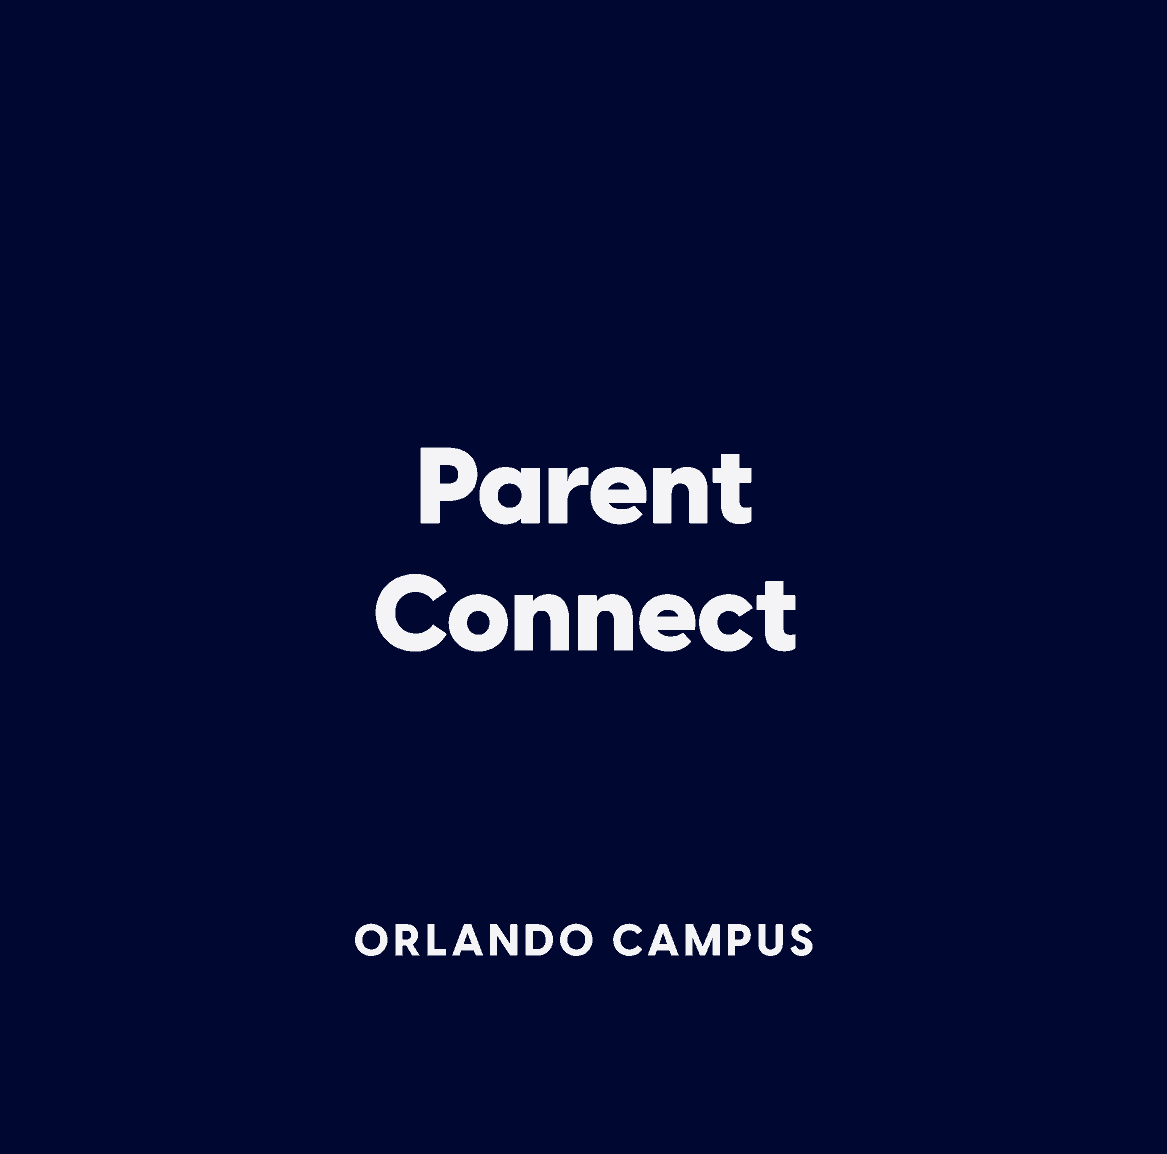 Orlando Parent Connect